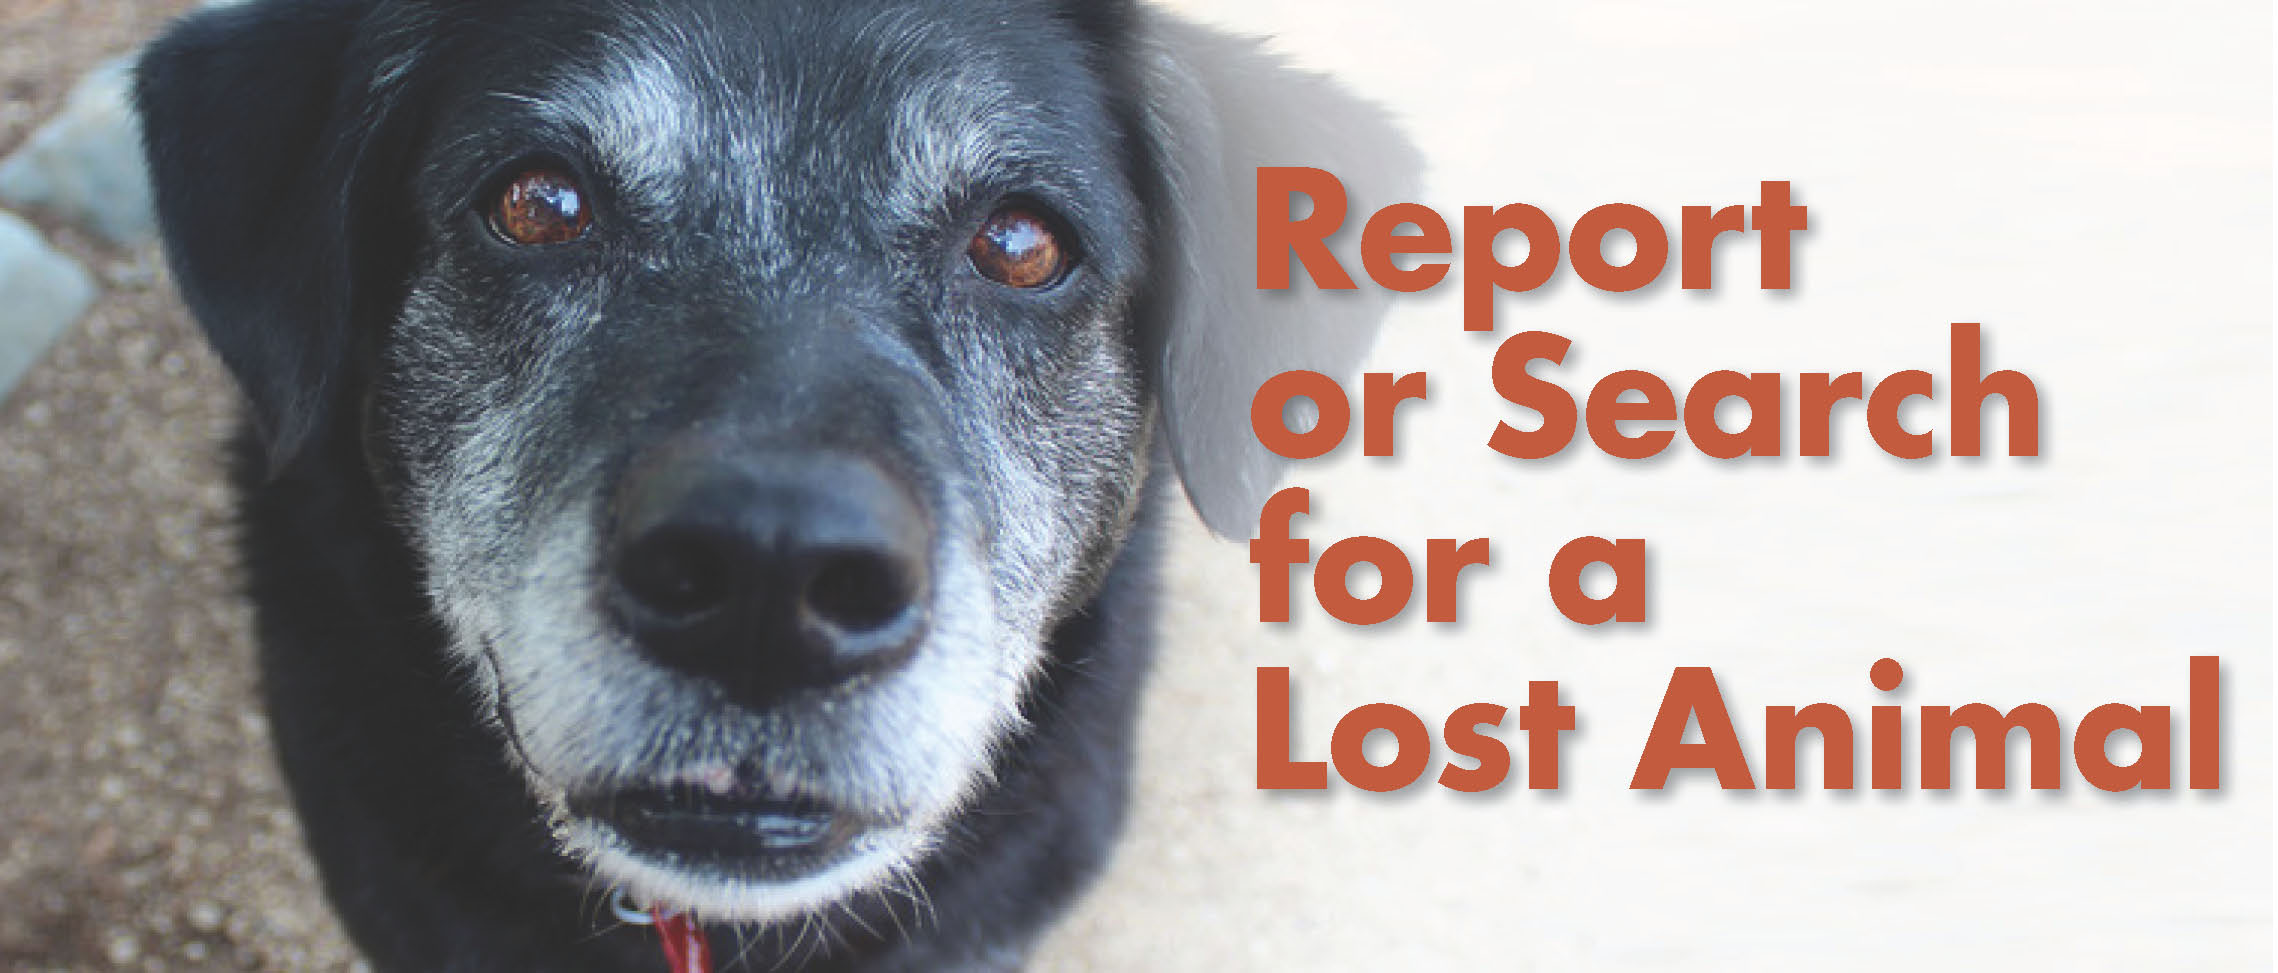 Report or Search for a Lost Animal